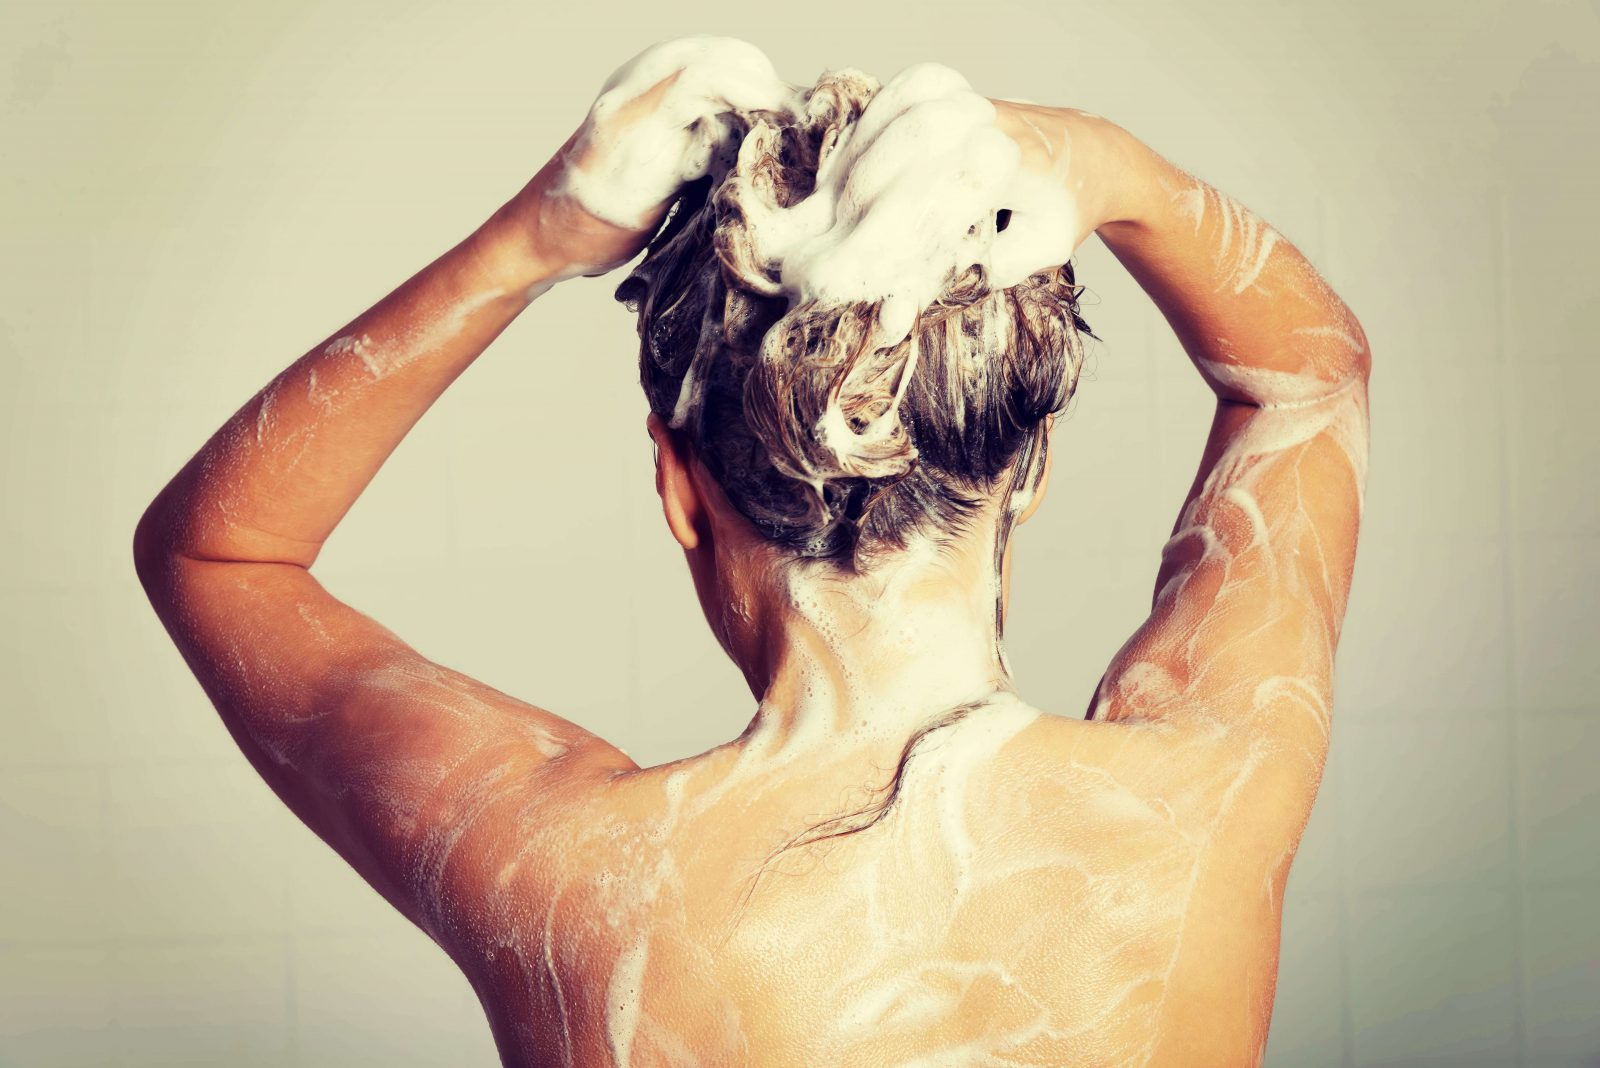 How To Wash Your Hair – The Right Way